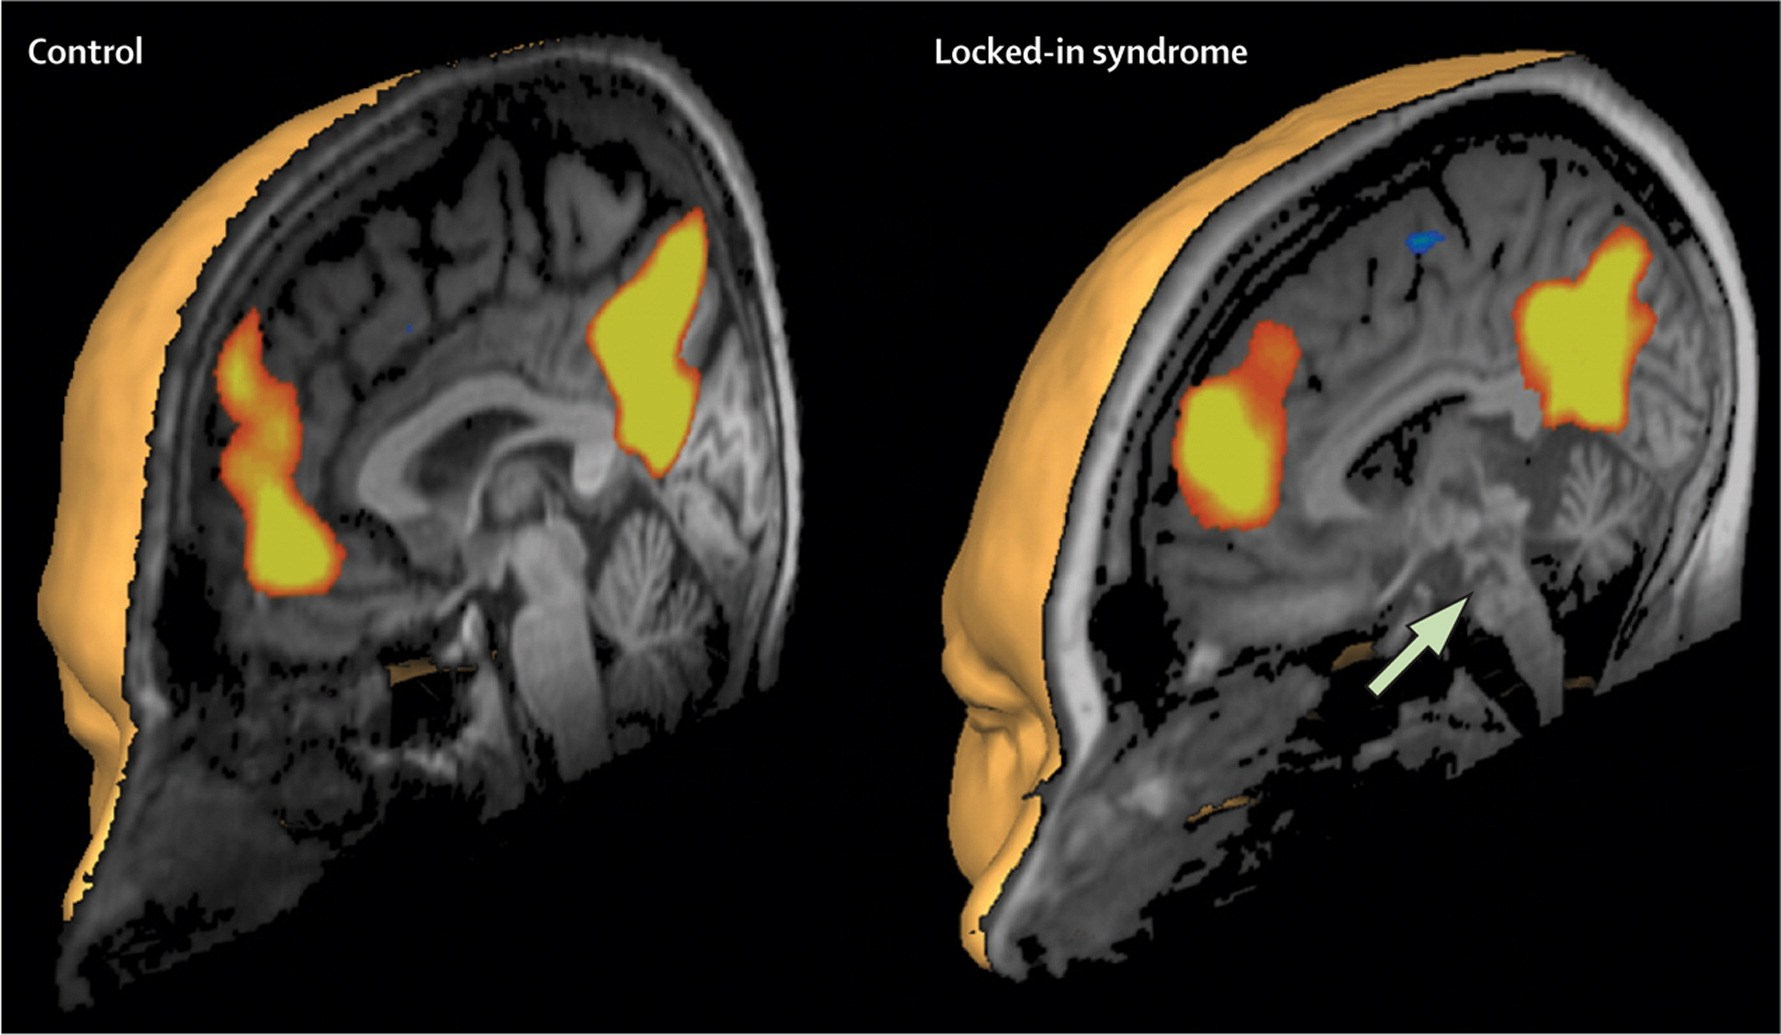 Mri Scans May Hold Answers For Locked In Syndrome Sound